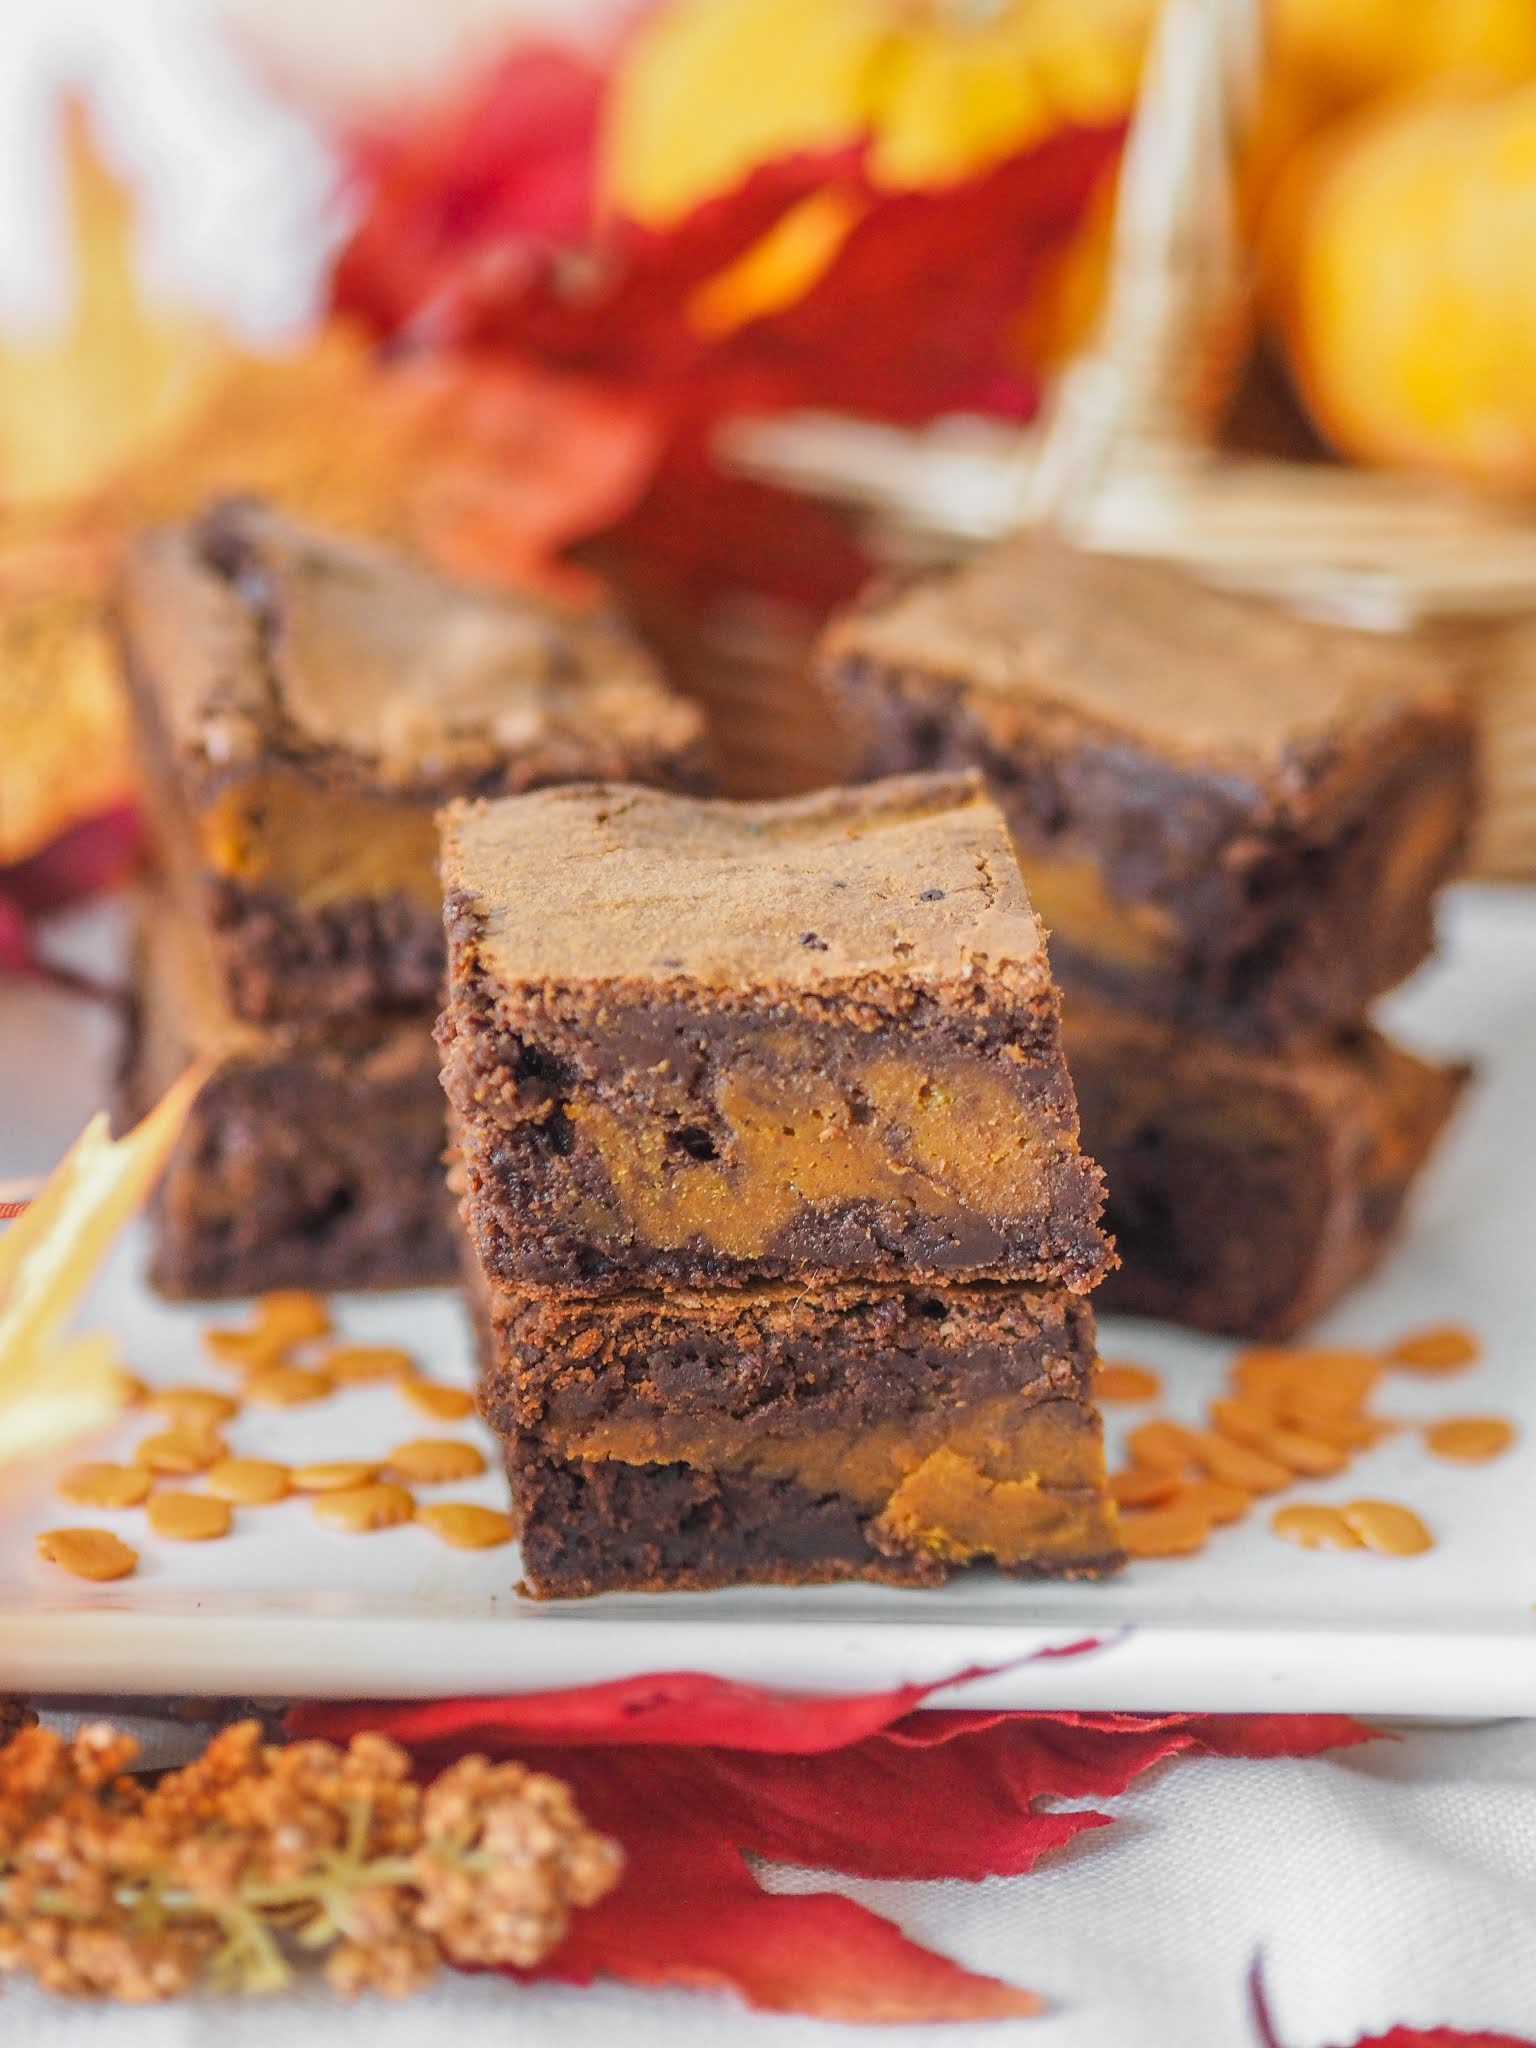 Pumpkin Swirl Chocolate Brownies, Food Blogger, Katie Kirk Loves, Autumn Recipe, Fall Recipe, Autumn Baking, Pumpkin Spice Recipe, Chocolate Brownie Recipe, UK Baking Blog, Pumpkin Spice Brownies, Pumpkin Spice Baking